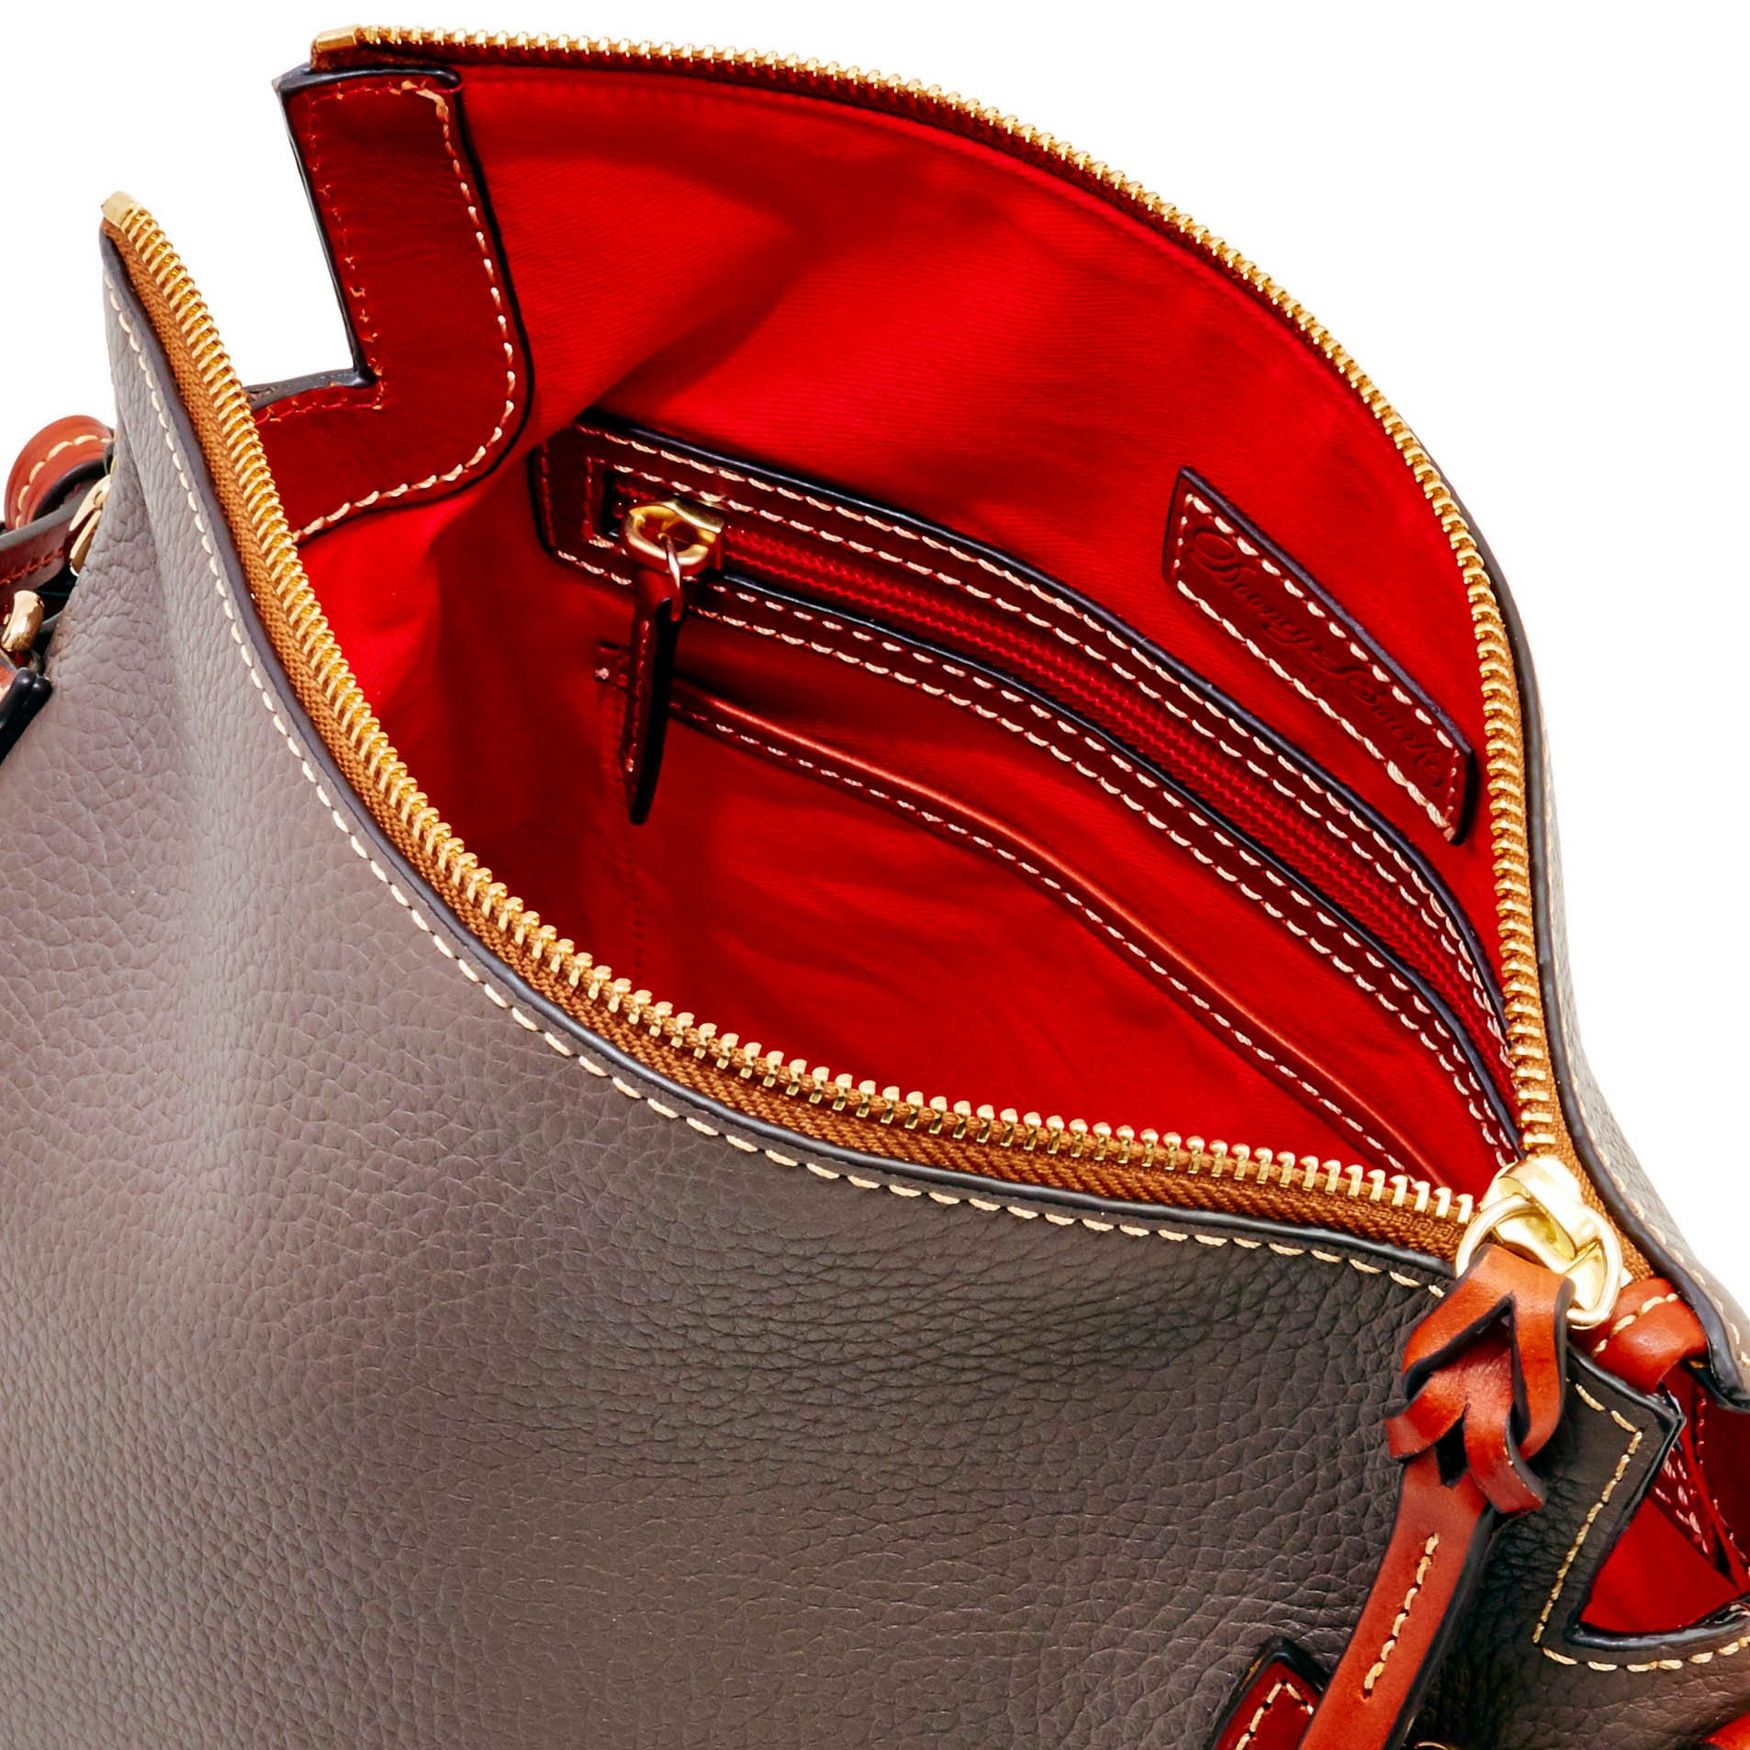 Dooney-amp-Bourke-Pebble-Grain-Medium-Zip-Crossbody-Shoulder-Bag thumbnail 21